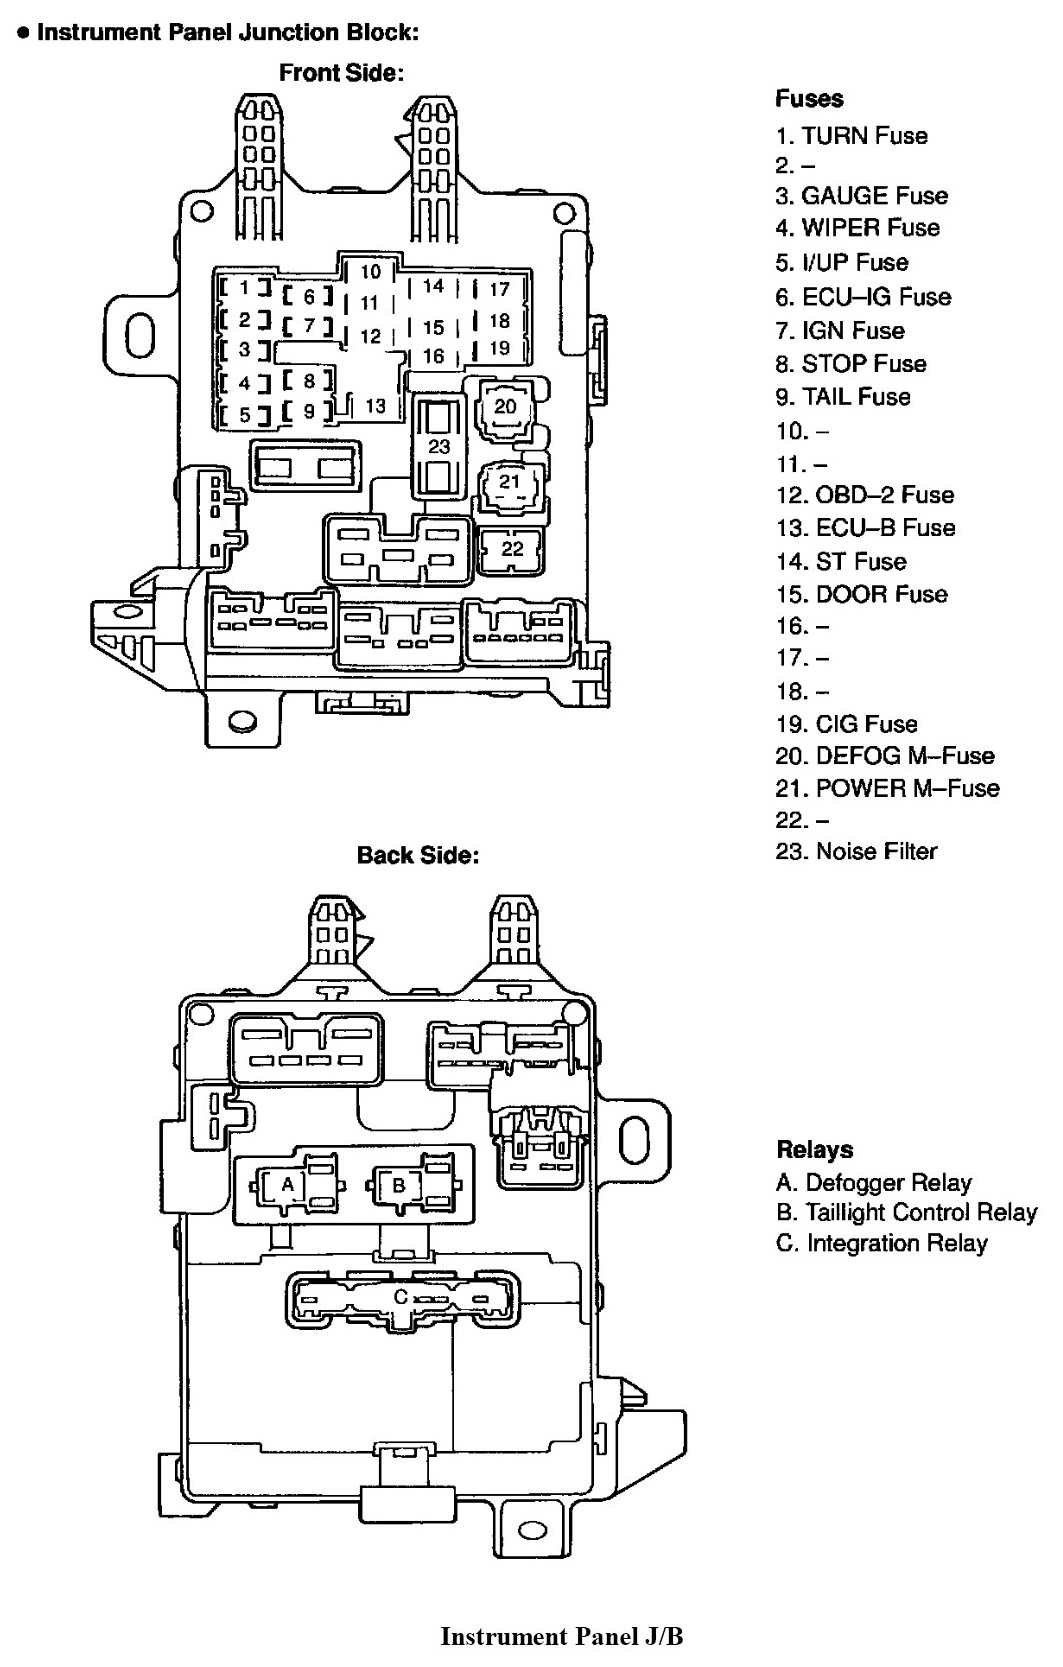 2002 toyota corolla fuse box diagram OJdqfns 2002 toyota corolla fuse box diagram image details 2002 toyota corolla fuse box diagram at readyjetset.co